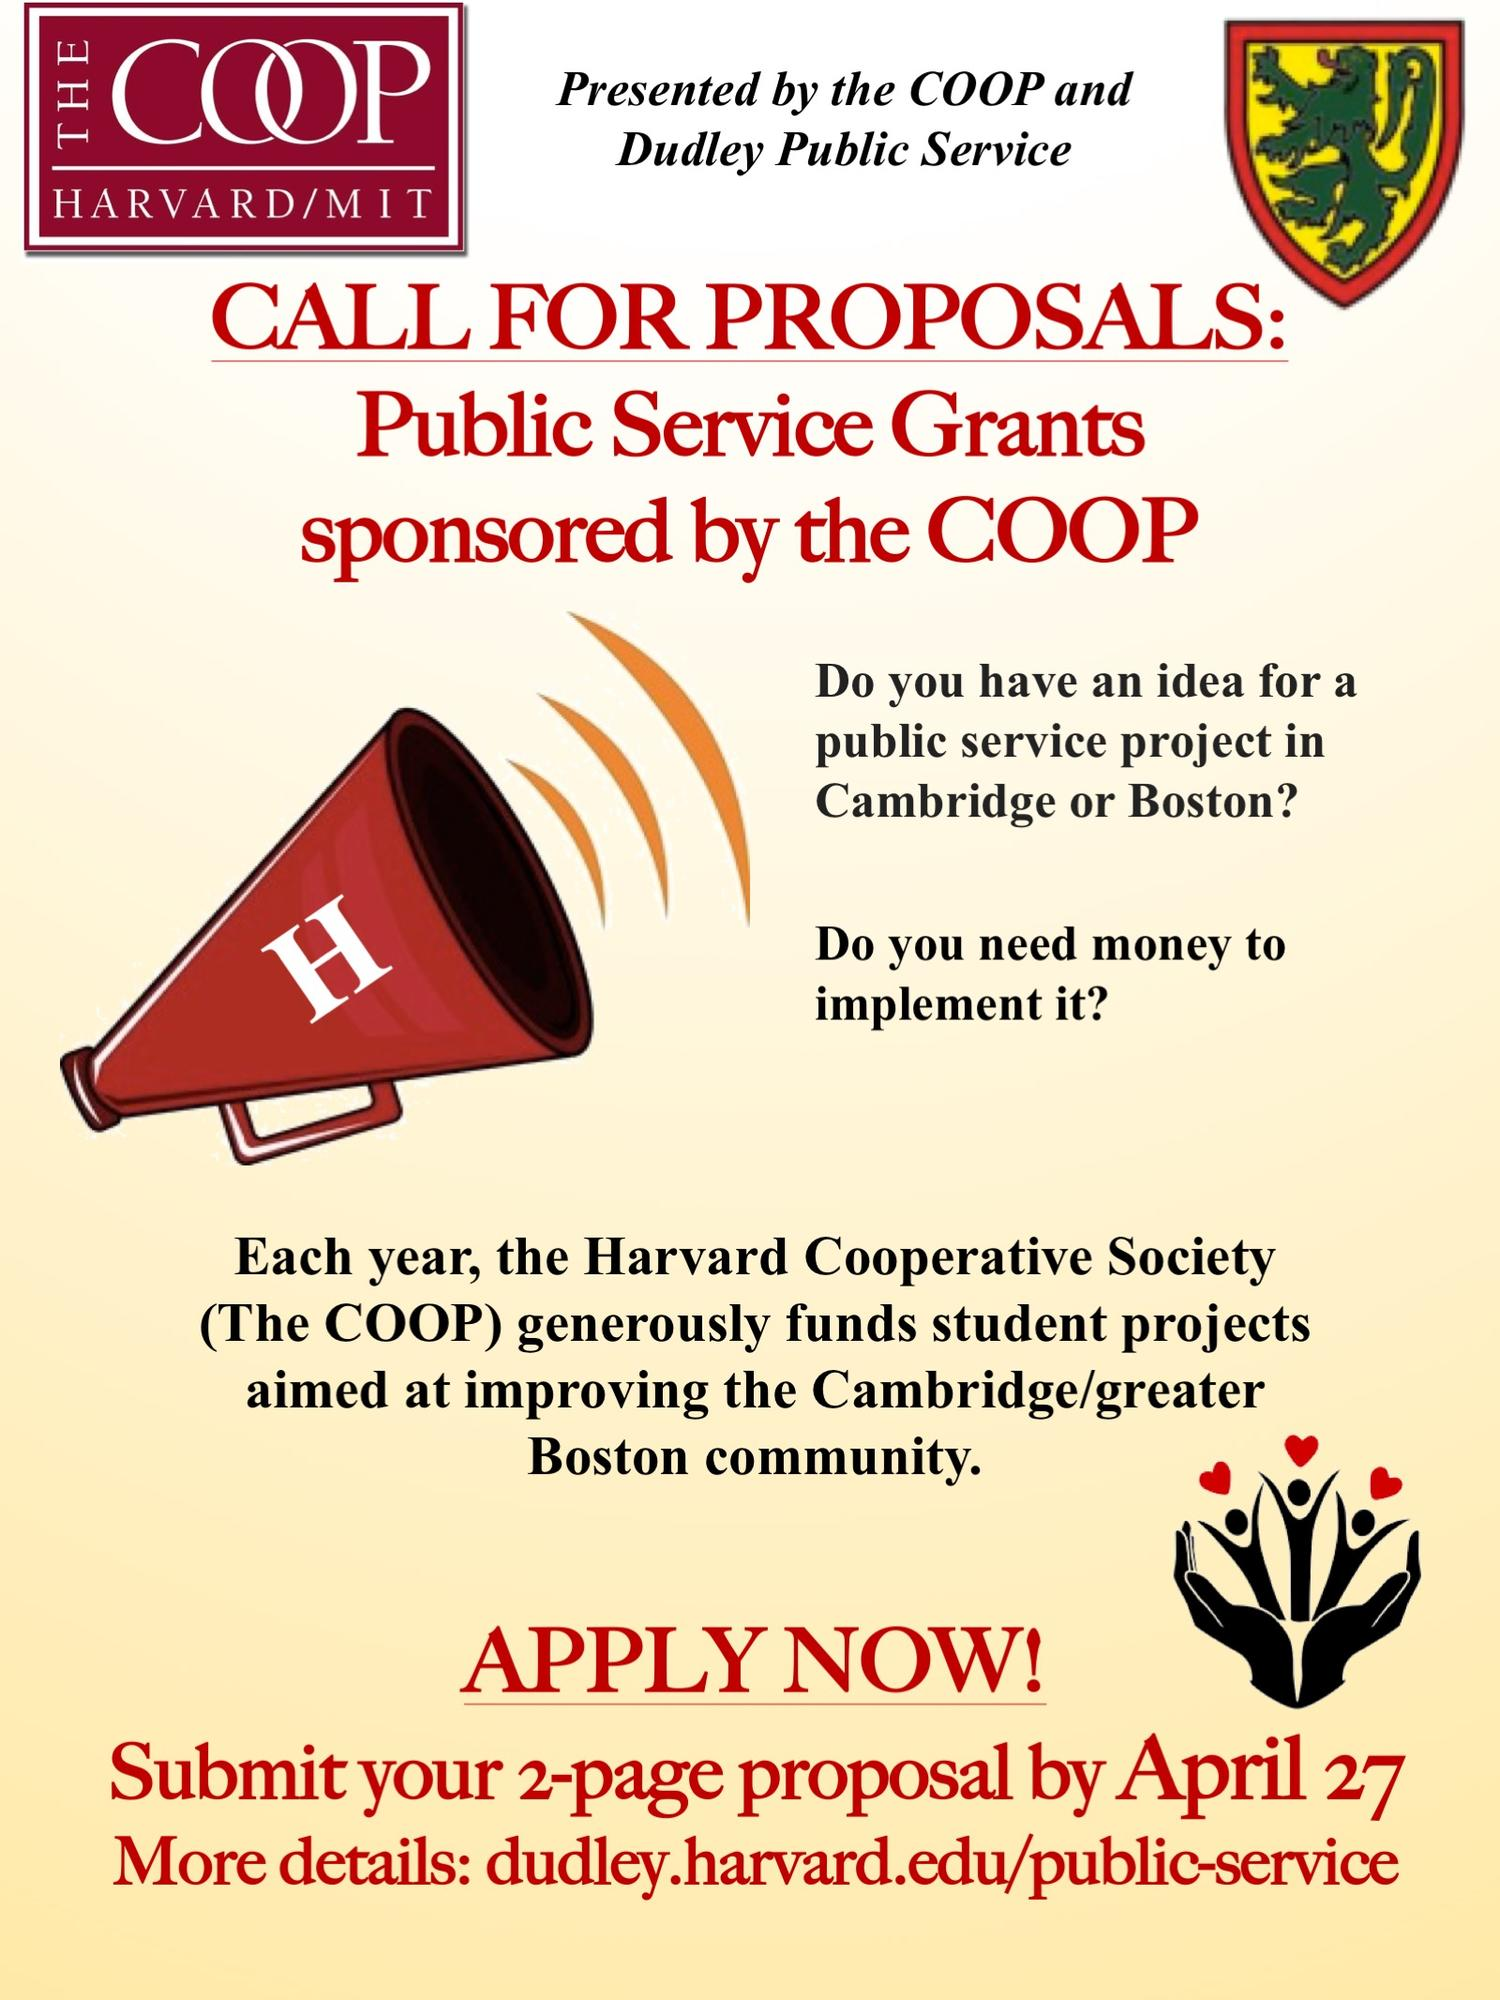 Call for Applications: Public Service Grants sponsored by the COOP